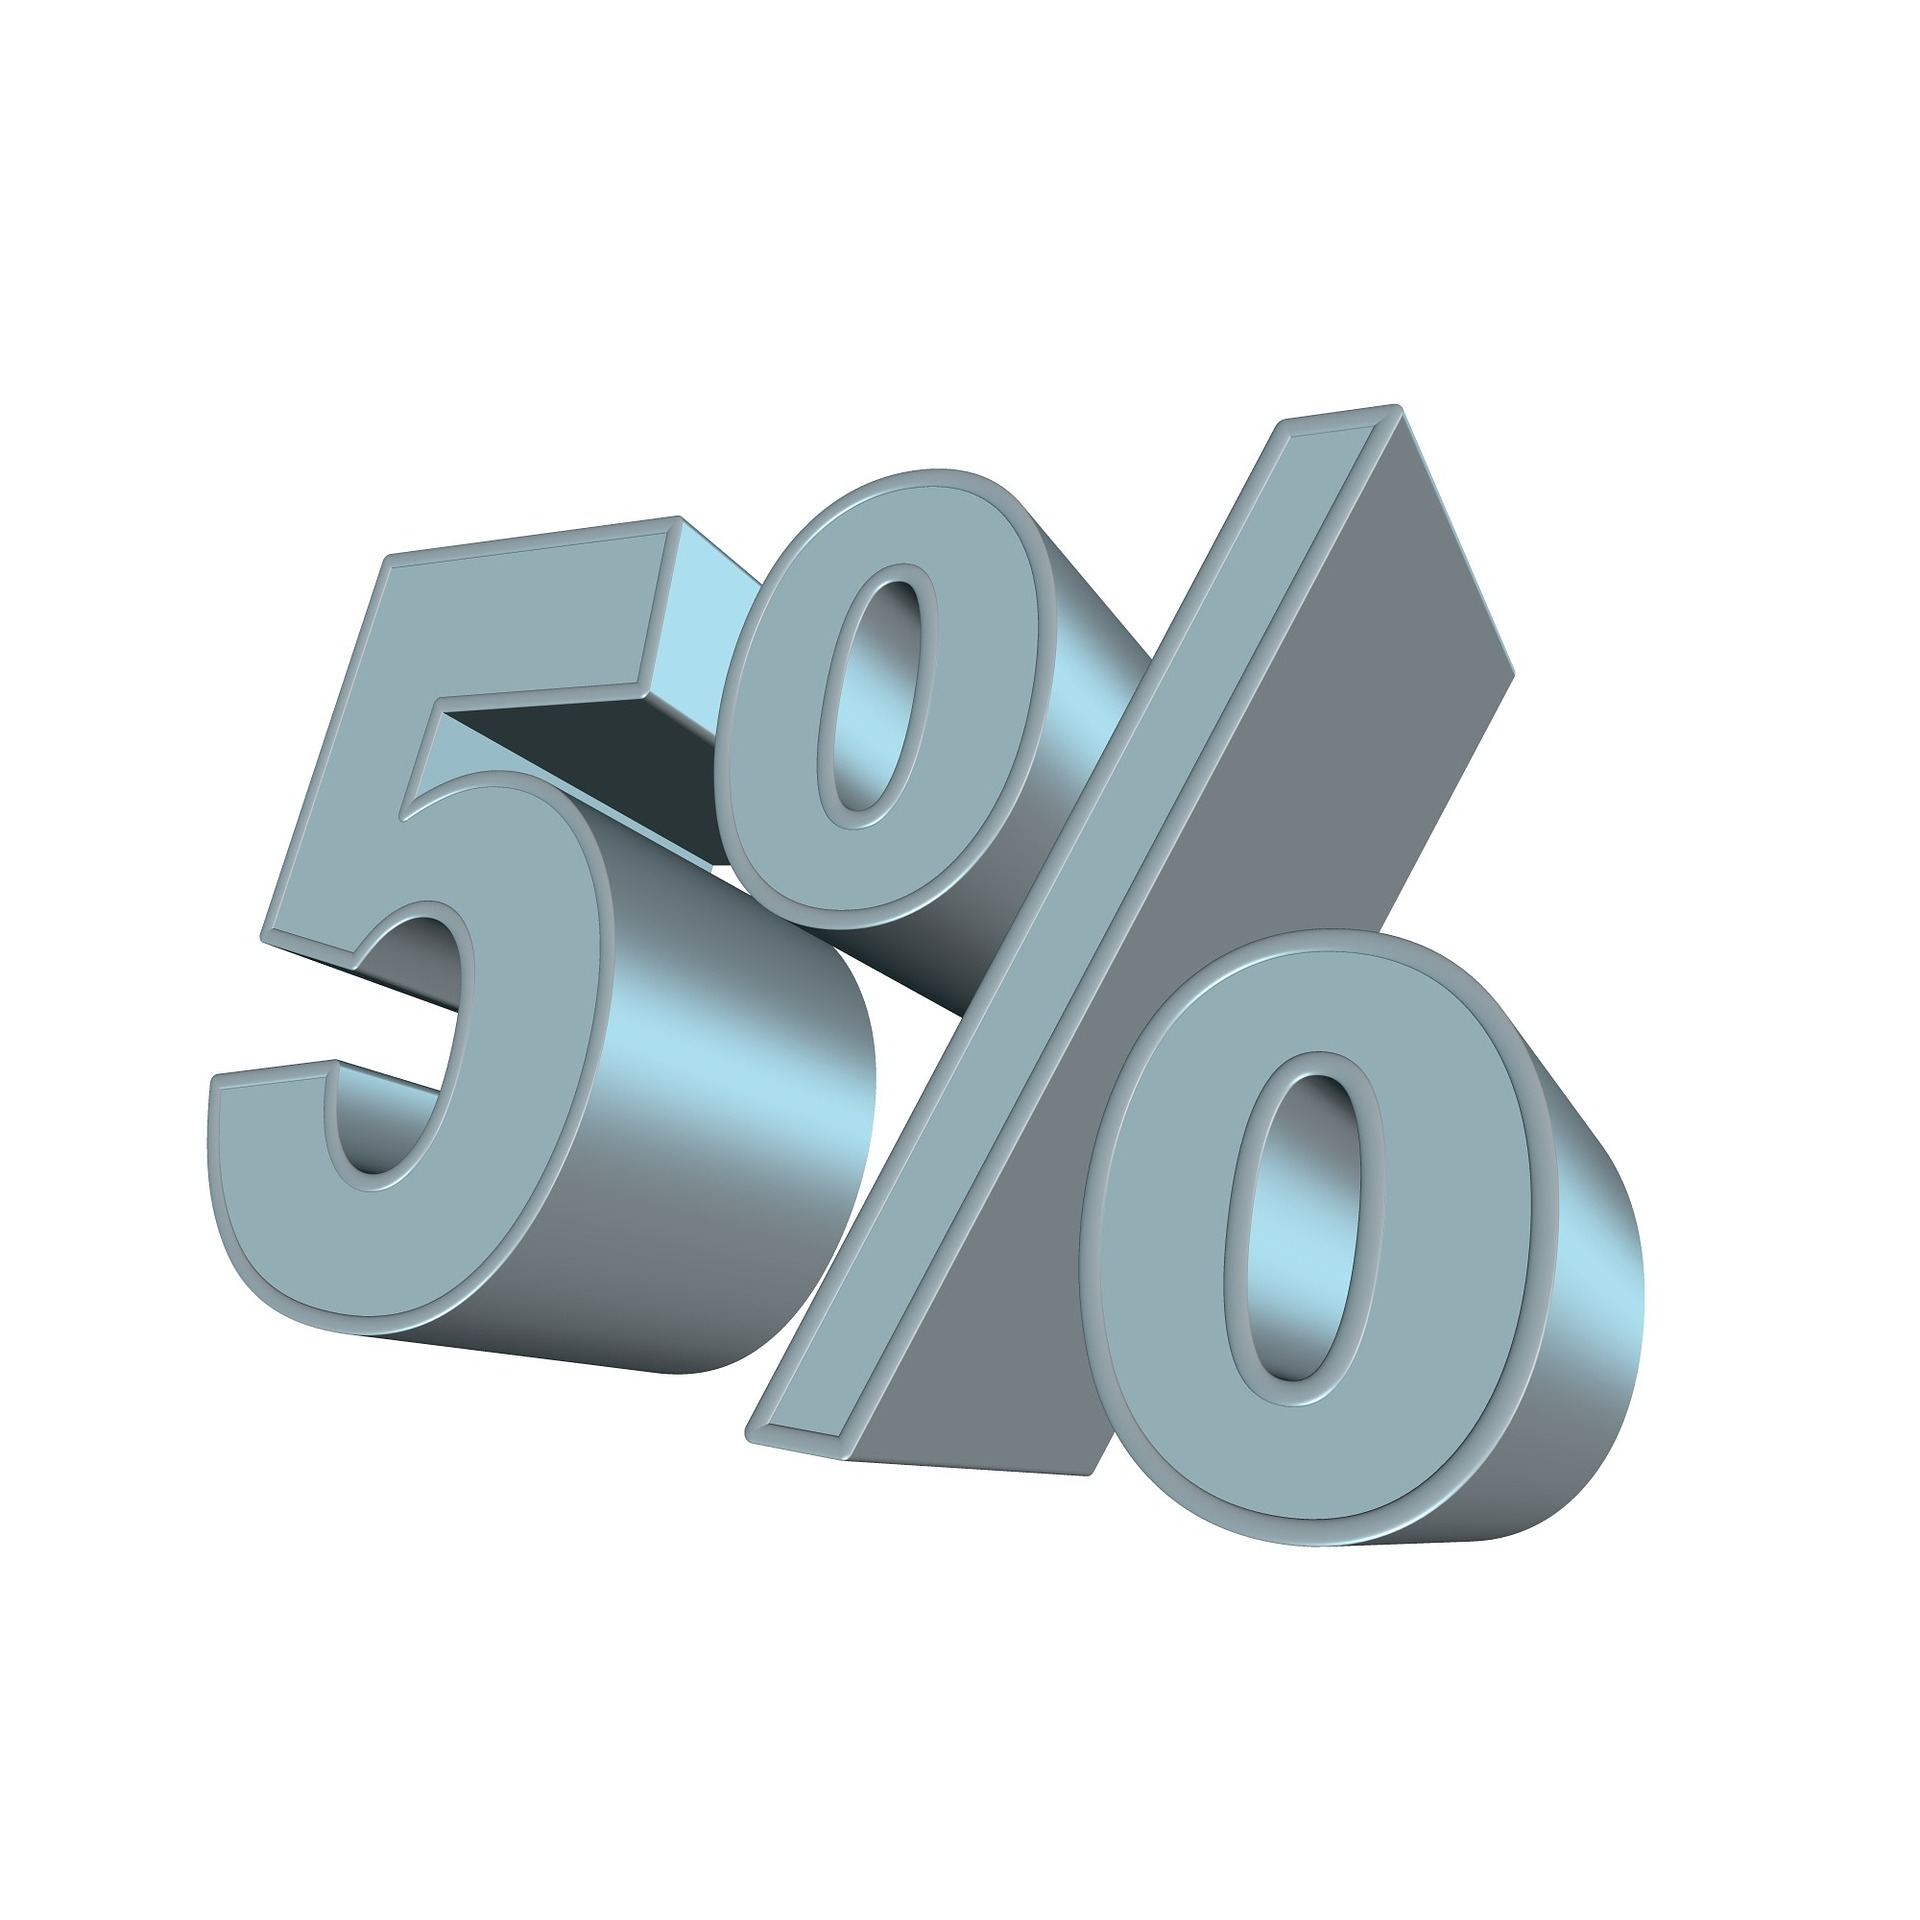 5% Surcharges